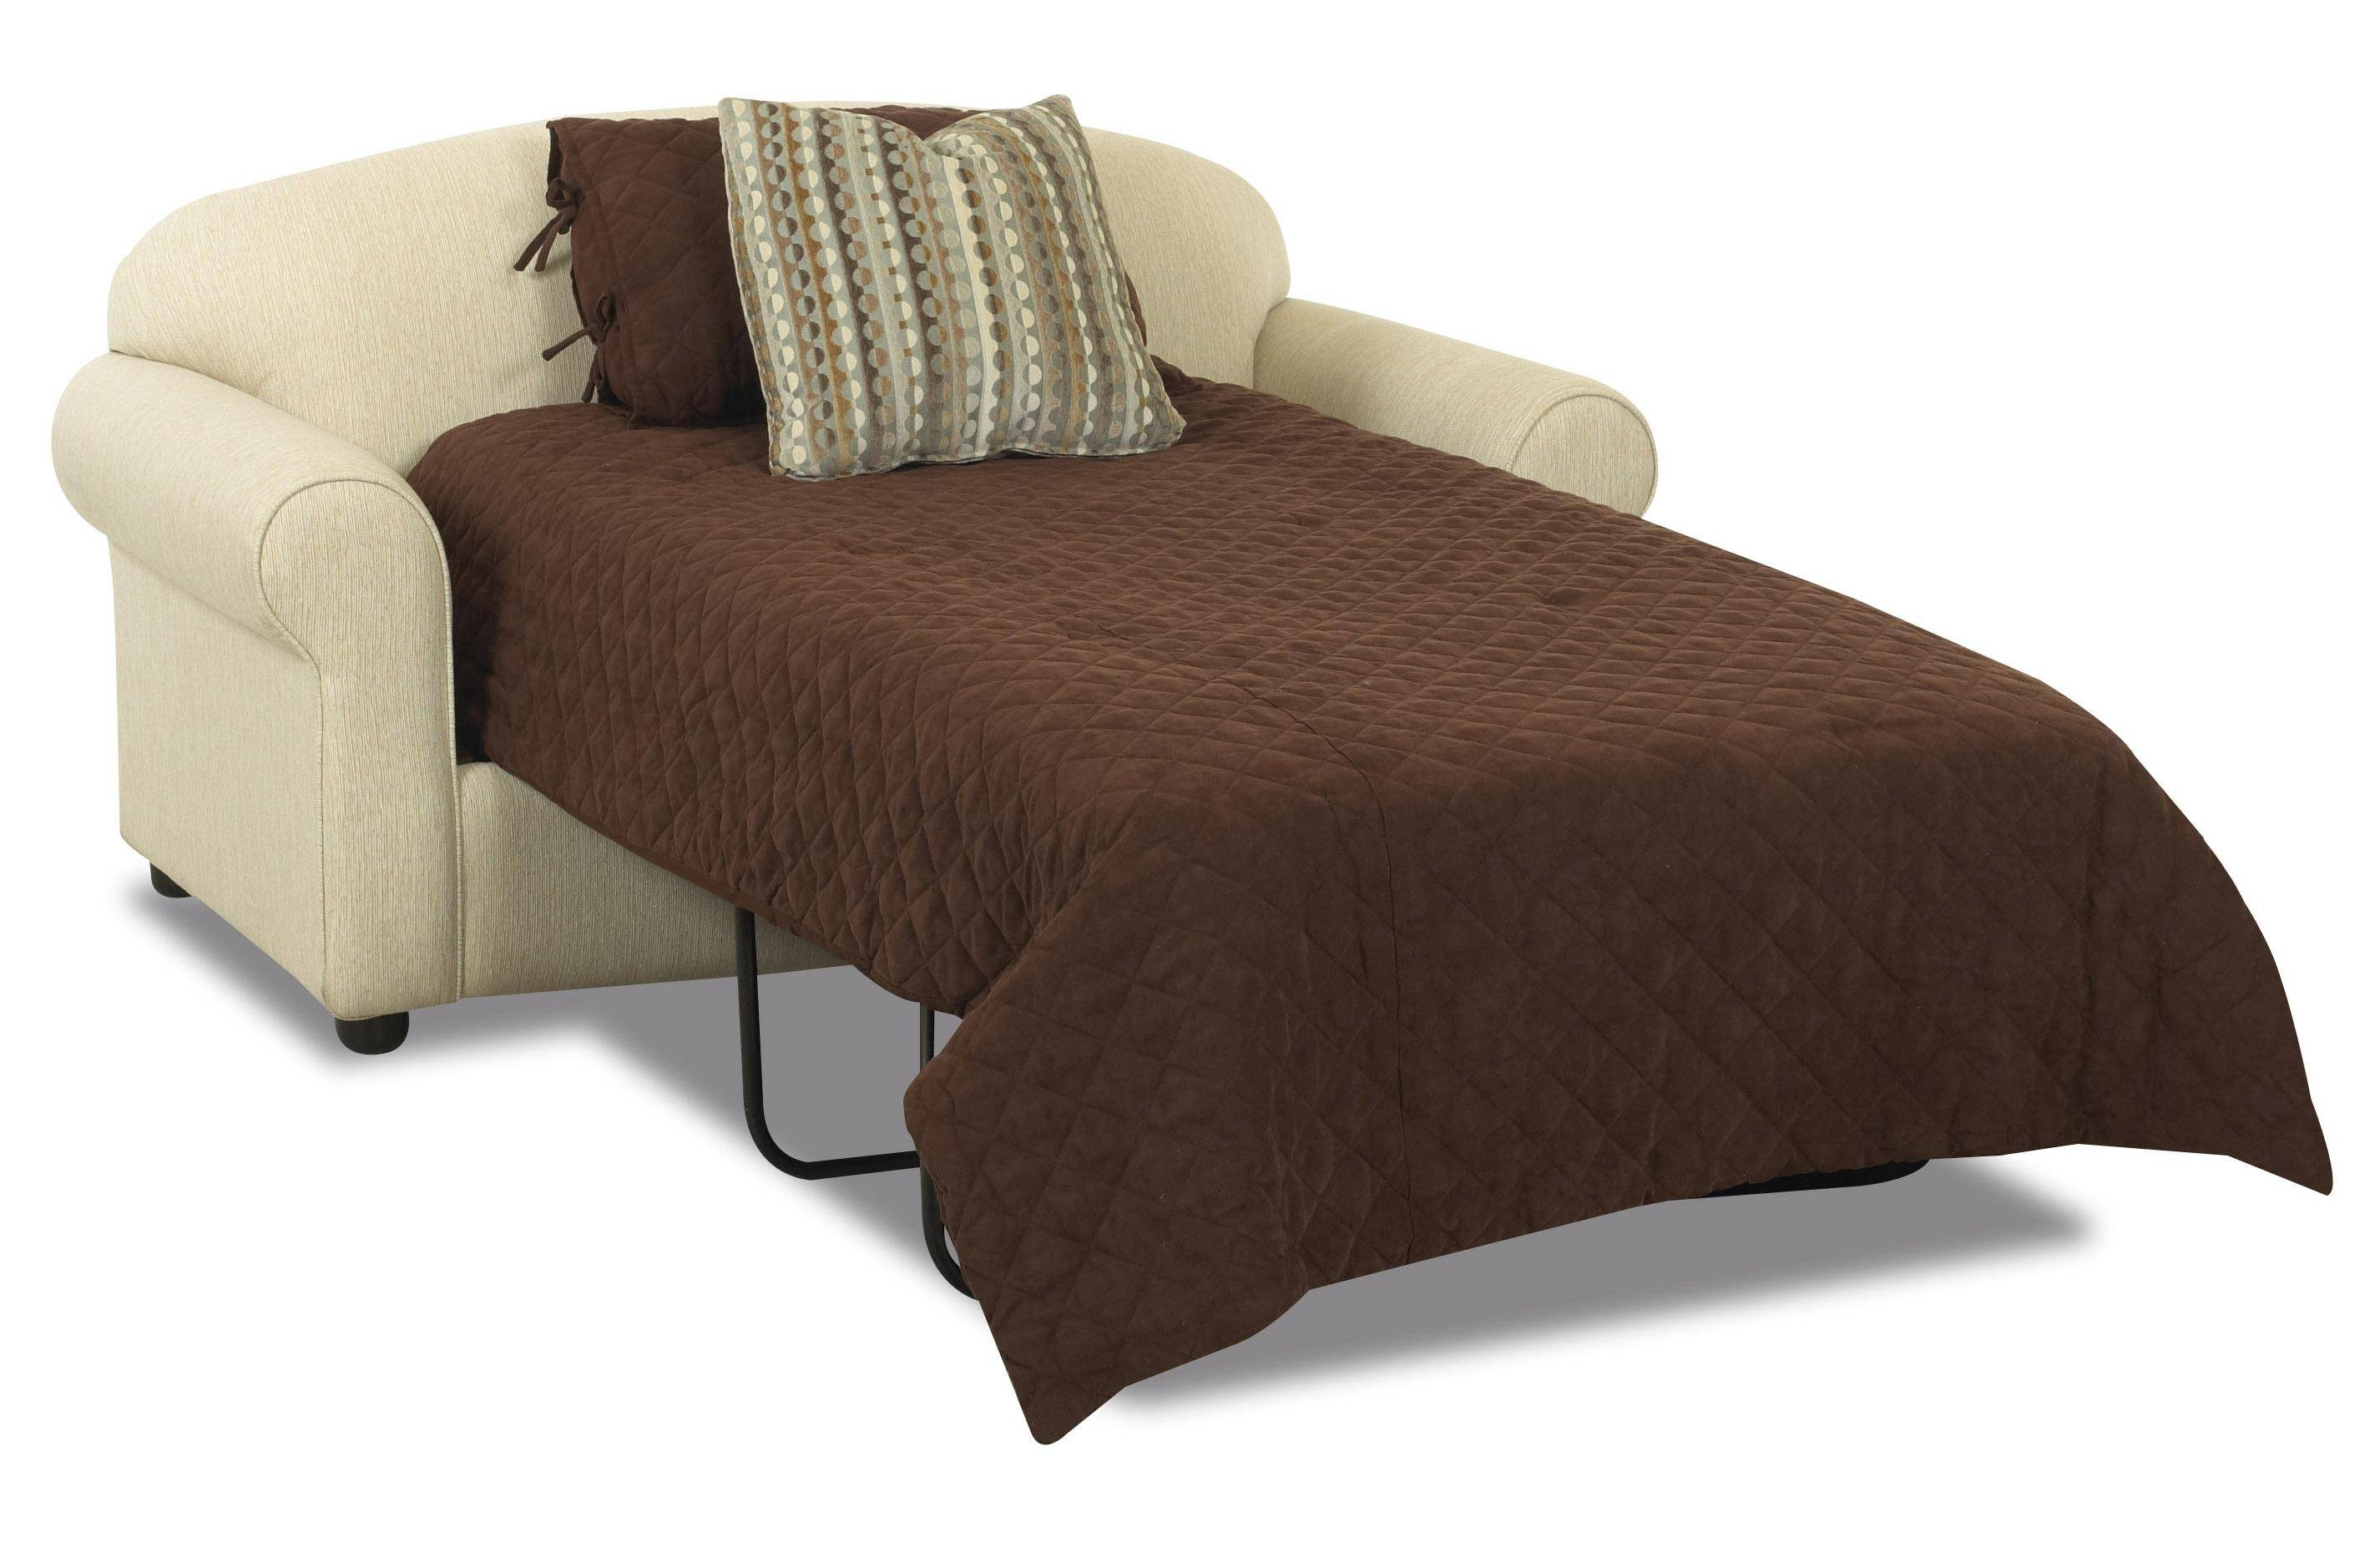 Klaussner Possibilities Innerspring Twin Sleeper Loveseat - Dunk with Loveseat Twin Sleeper Sofas (Image 15 of 30)